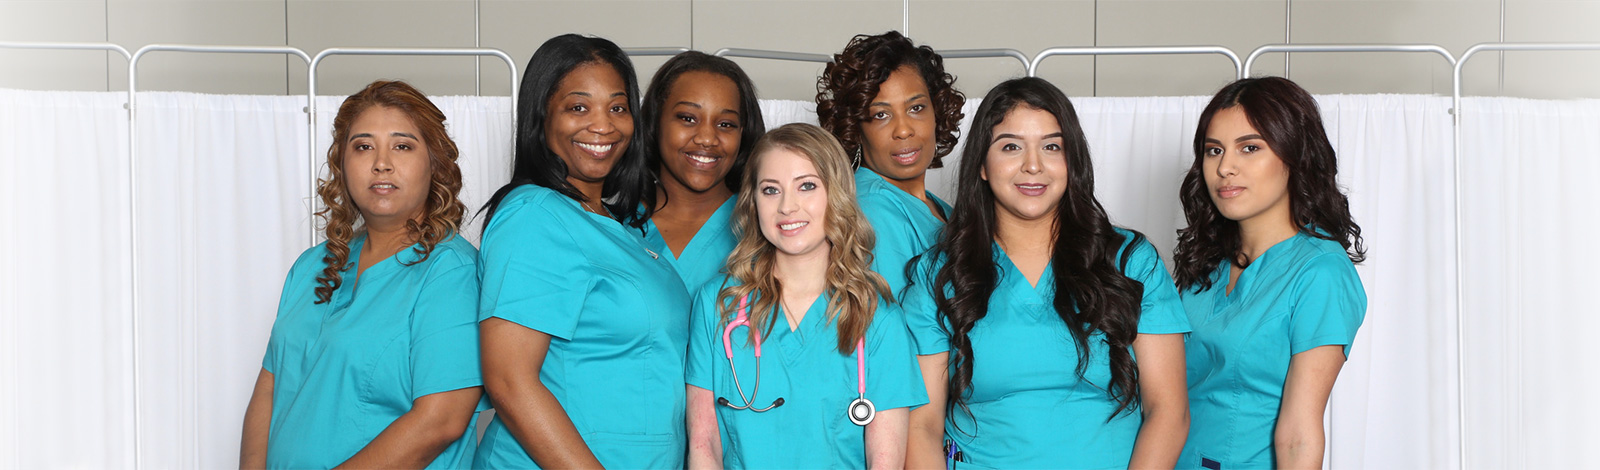 A group of nurses standing together in a group.